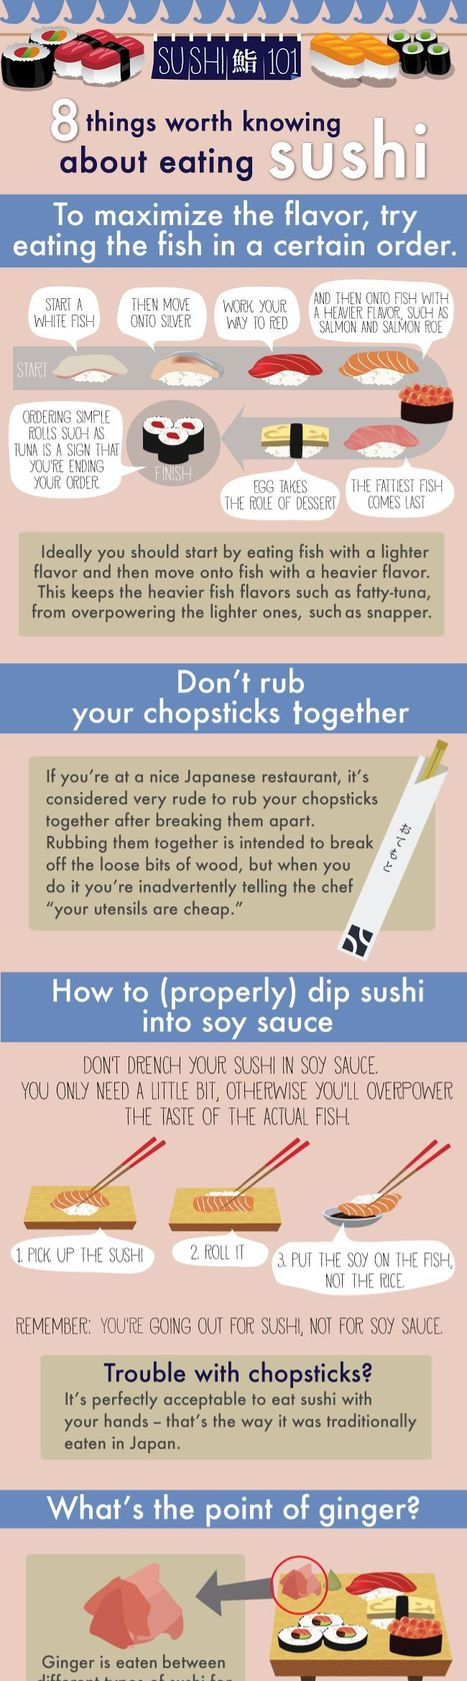 Sushi 101 | Nosh Thoughts | Scoop.it